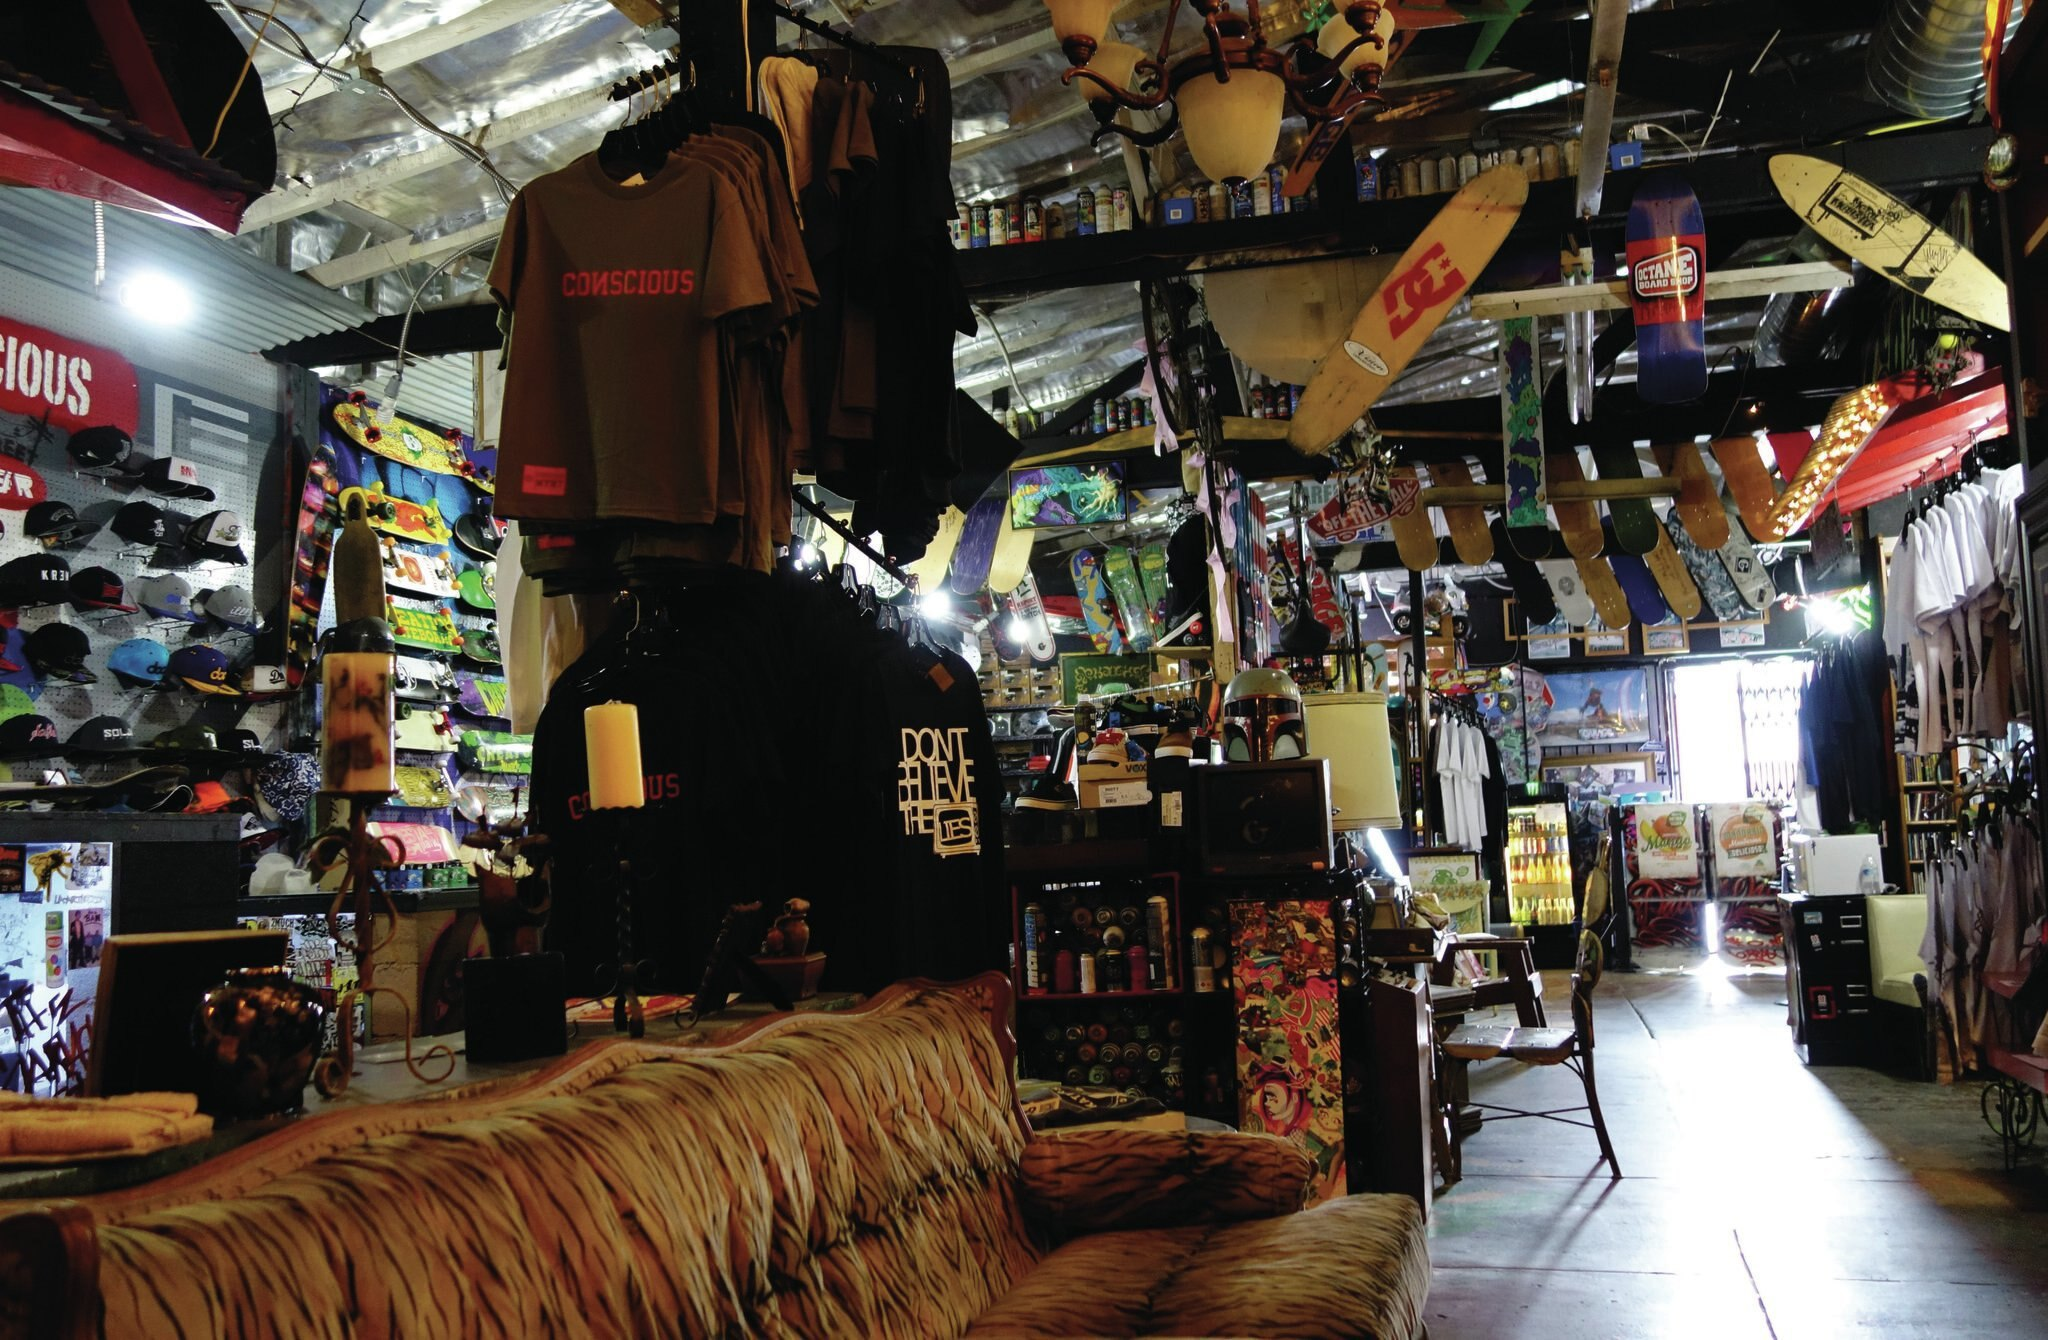 Since , Longboard House has the best prices on surfboards, swimwear, t-shirts, and surf gear. From fins to flip flops and bodyboards- Longboard House has you covered! Shop online or visit our iconic store in Indialantic, Florida. We've got longboards, shortboards, hybrids and epoxies, plus all the accessories like surfboard racks and bags.